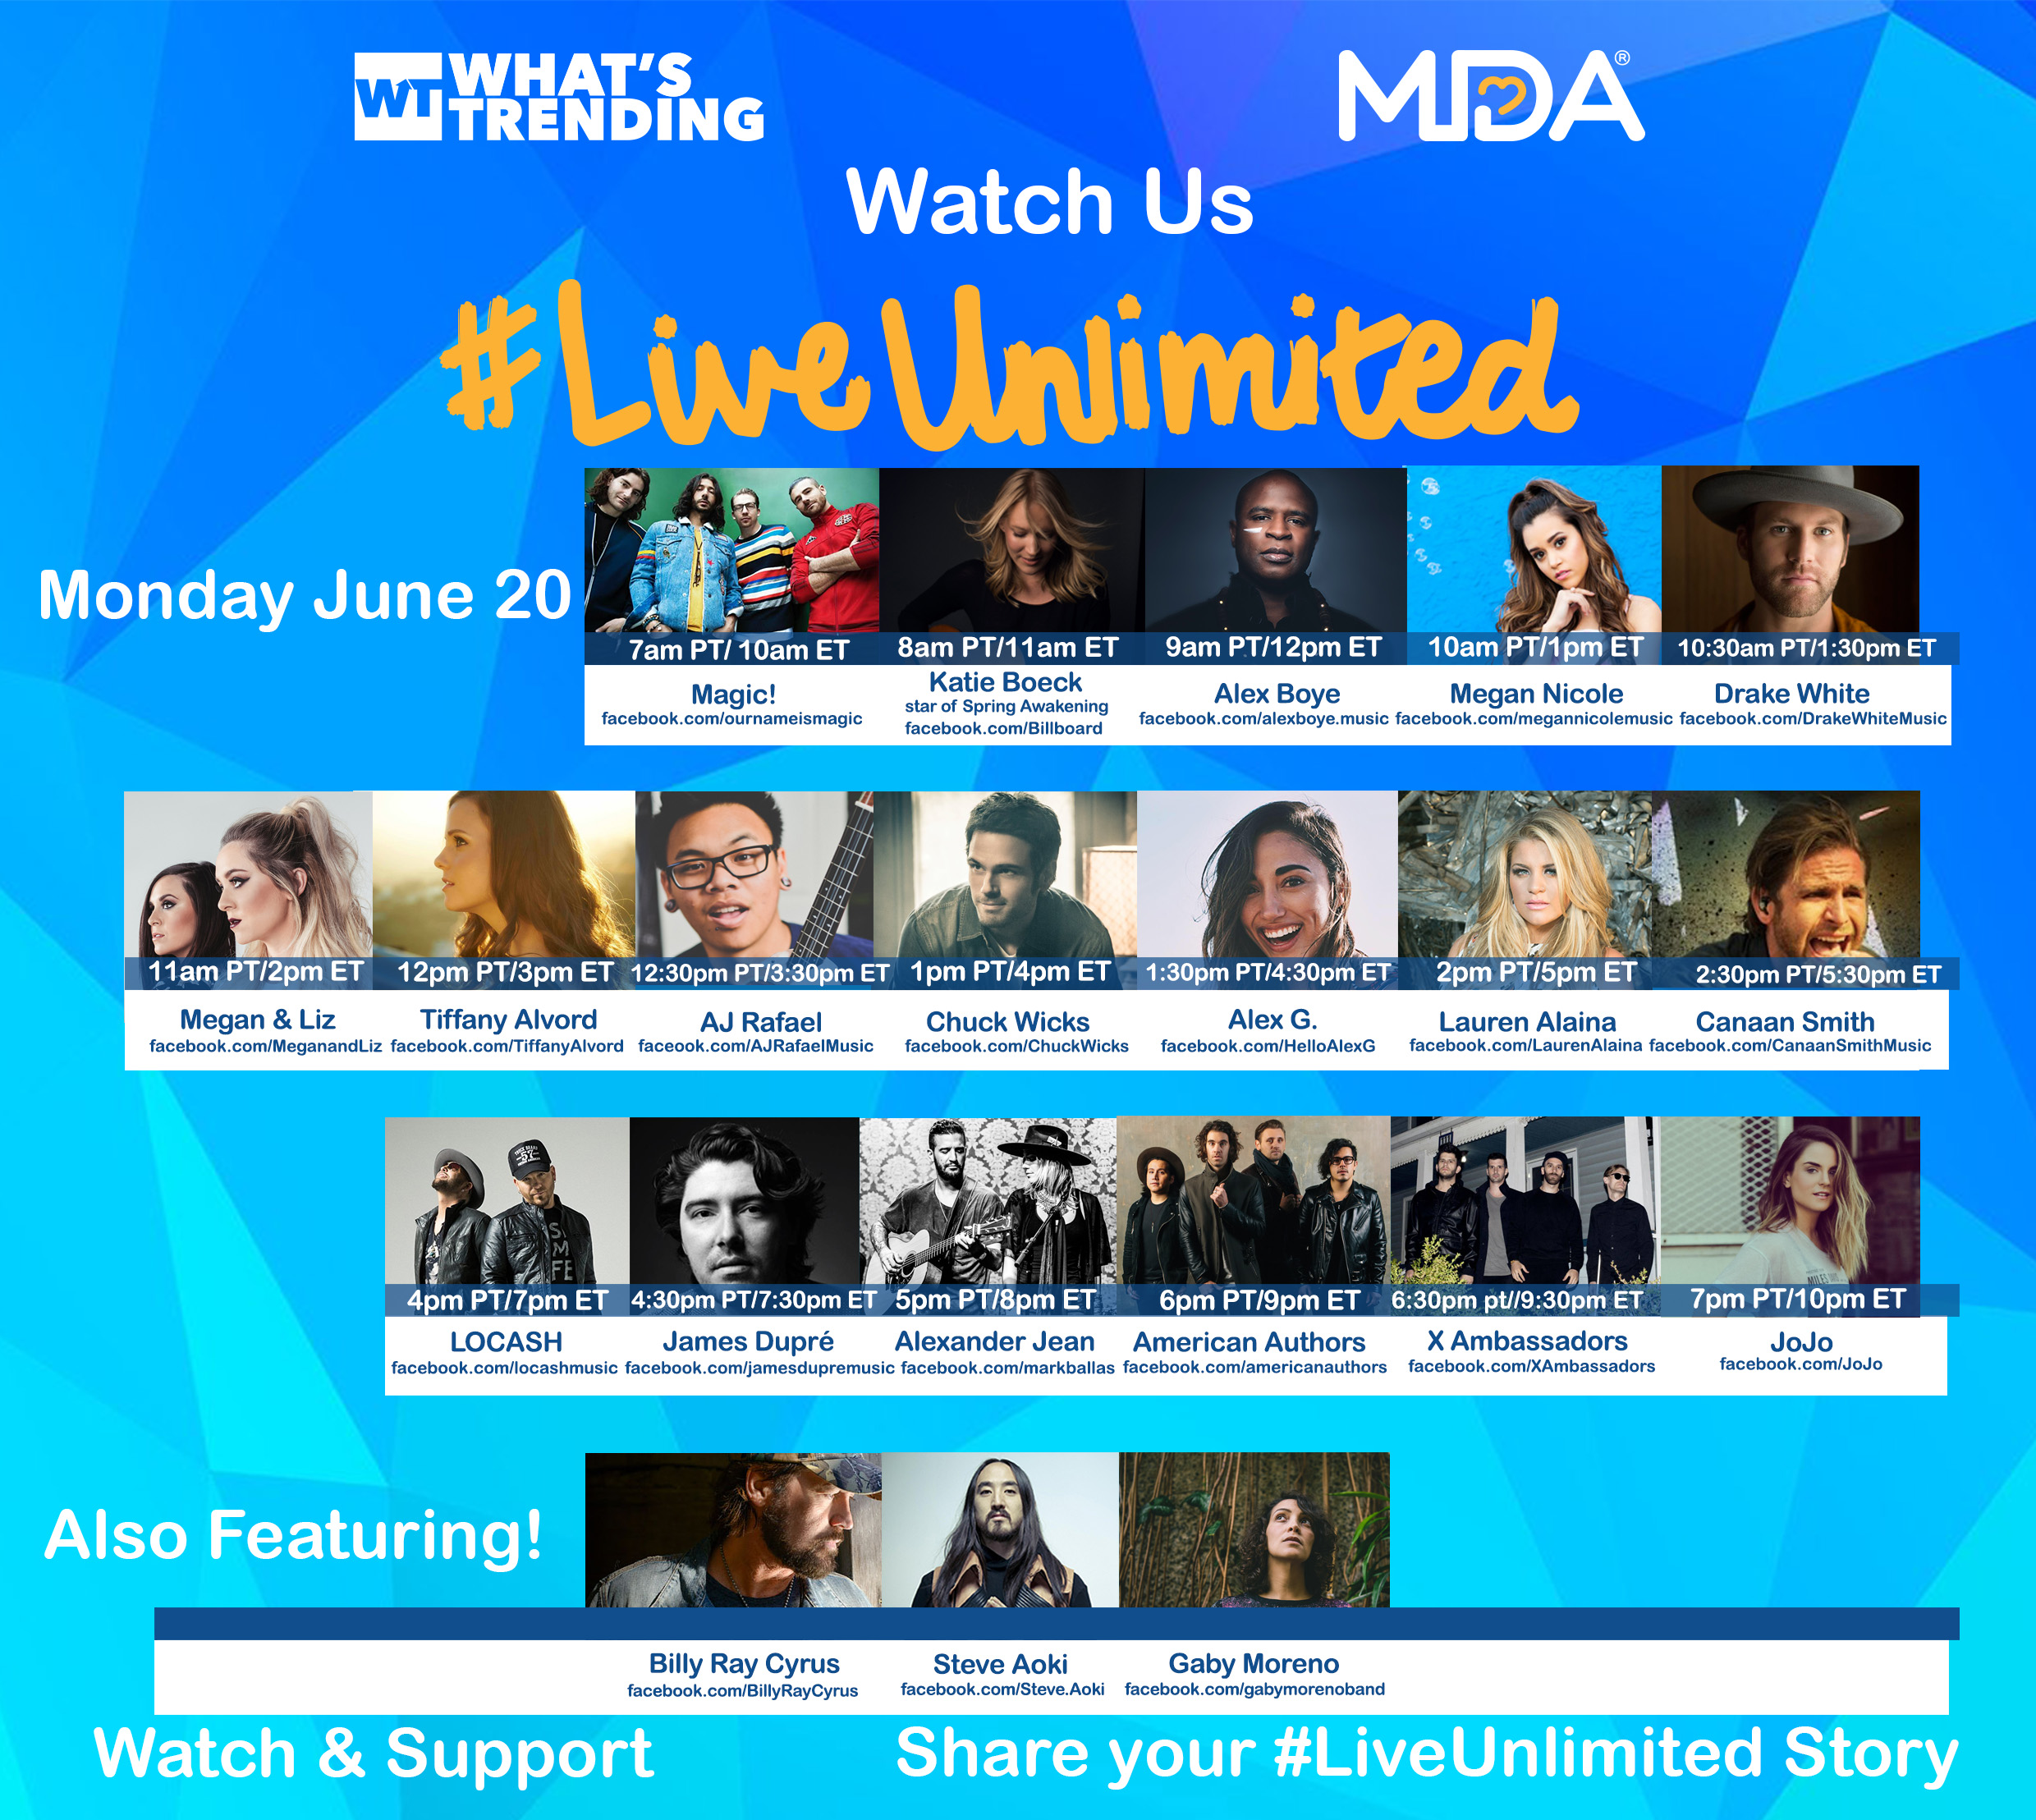 MDA Live Unlimited campaign kicks off today with a 12-hour celebration of music